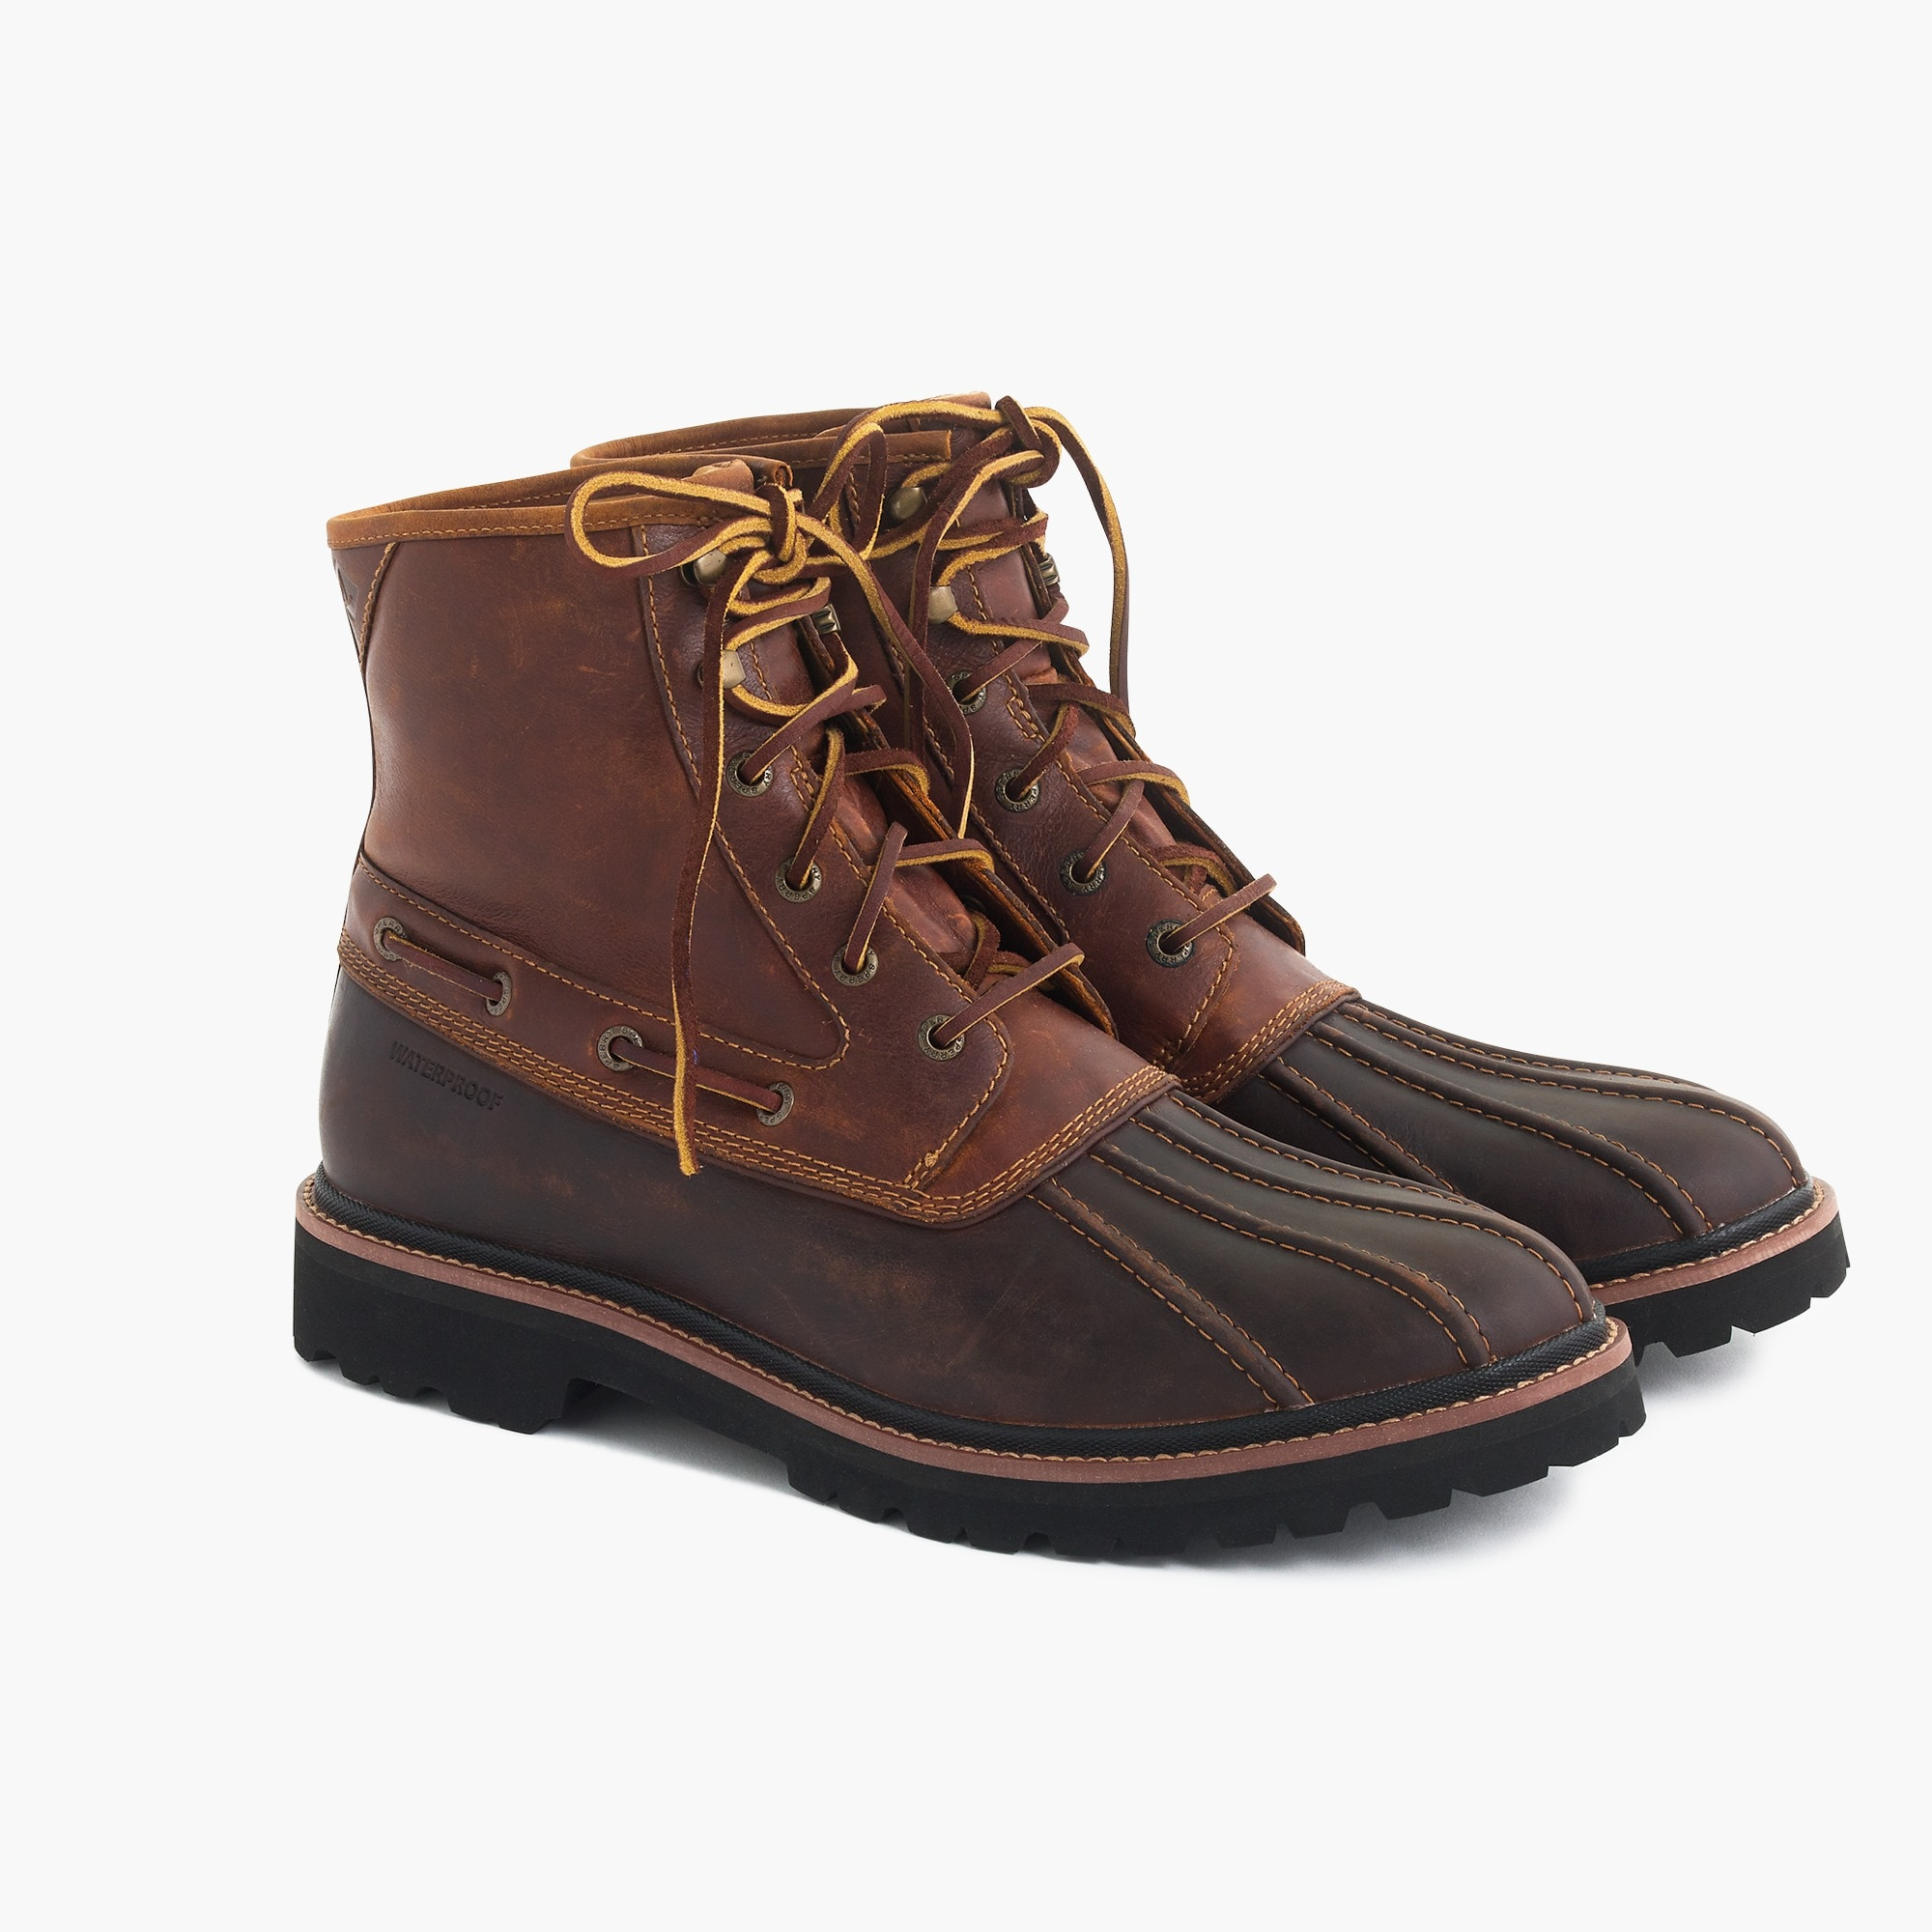 mens Sperry® Gold Cup lug duck boots